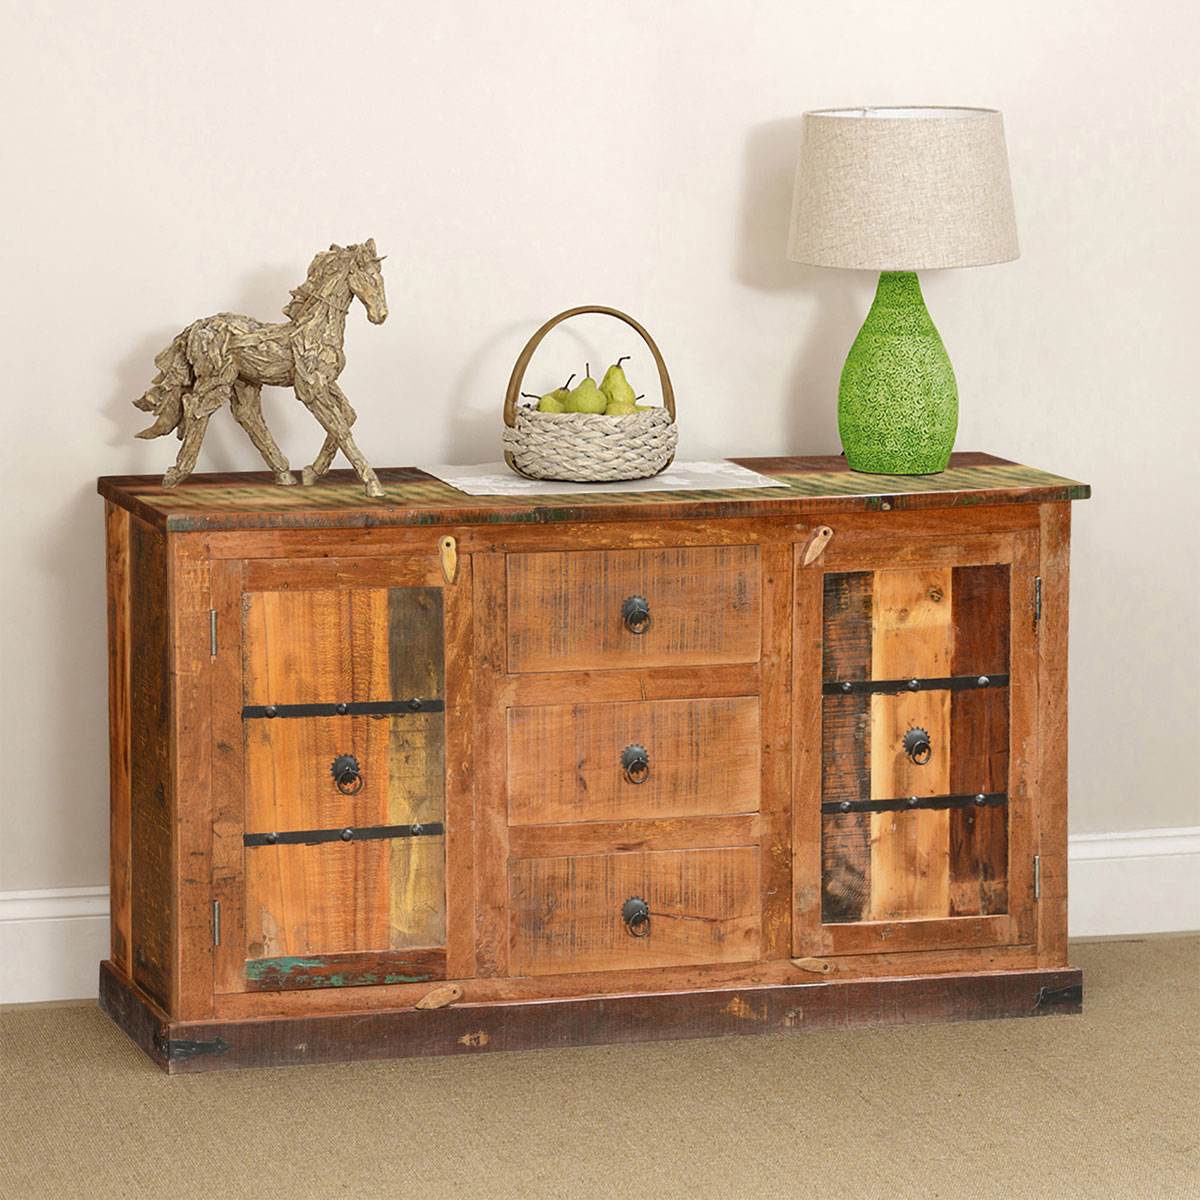 Starburst 3 Door Sideboards With Well Known Classic Country Rustic Reclaimed Wood 3 Drawer Sideboard Cabinet (View 3 of 20)